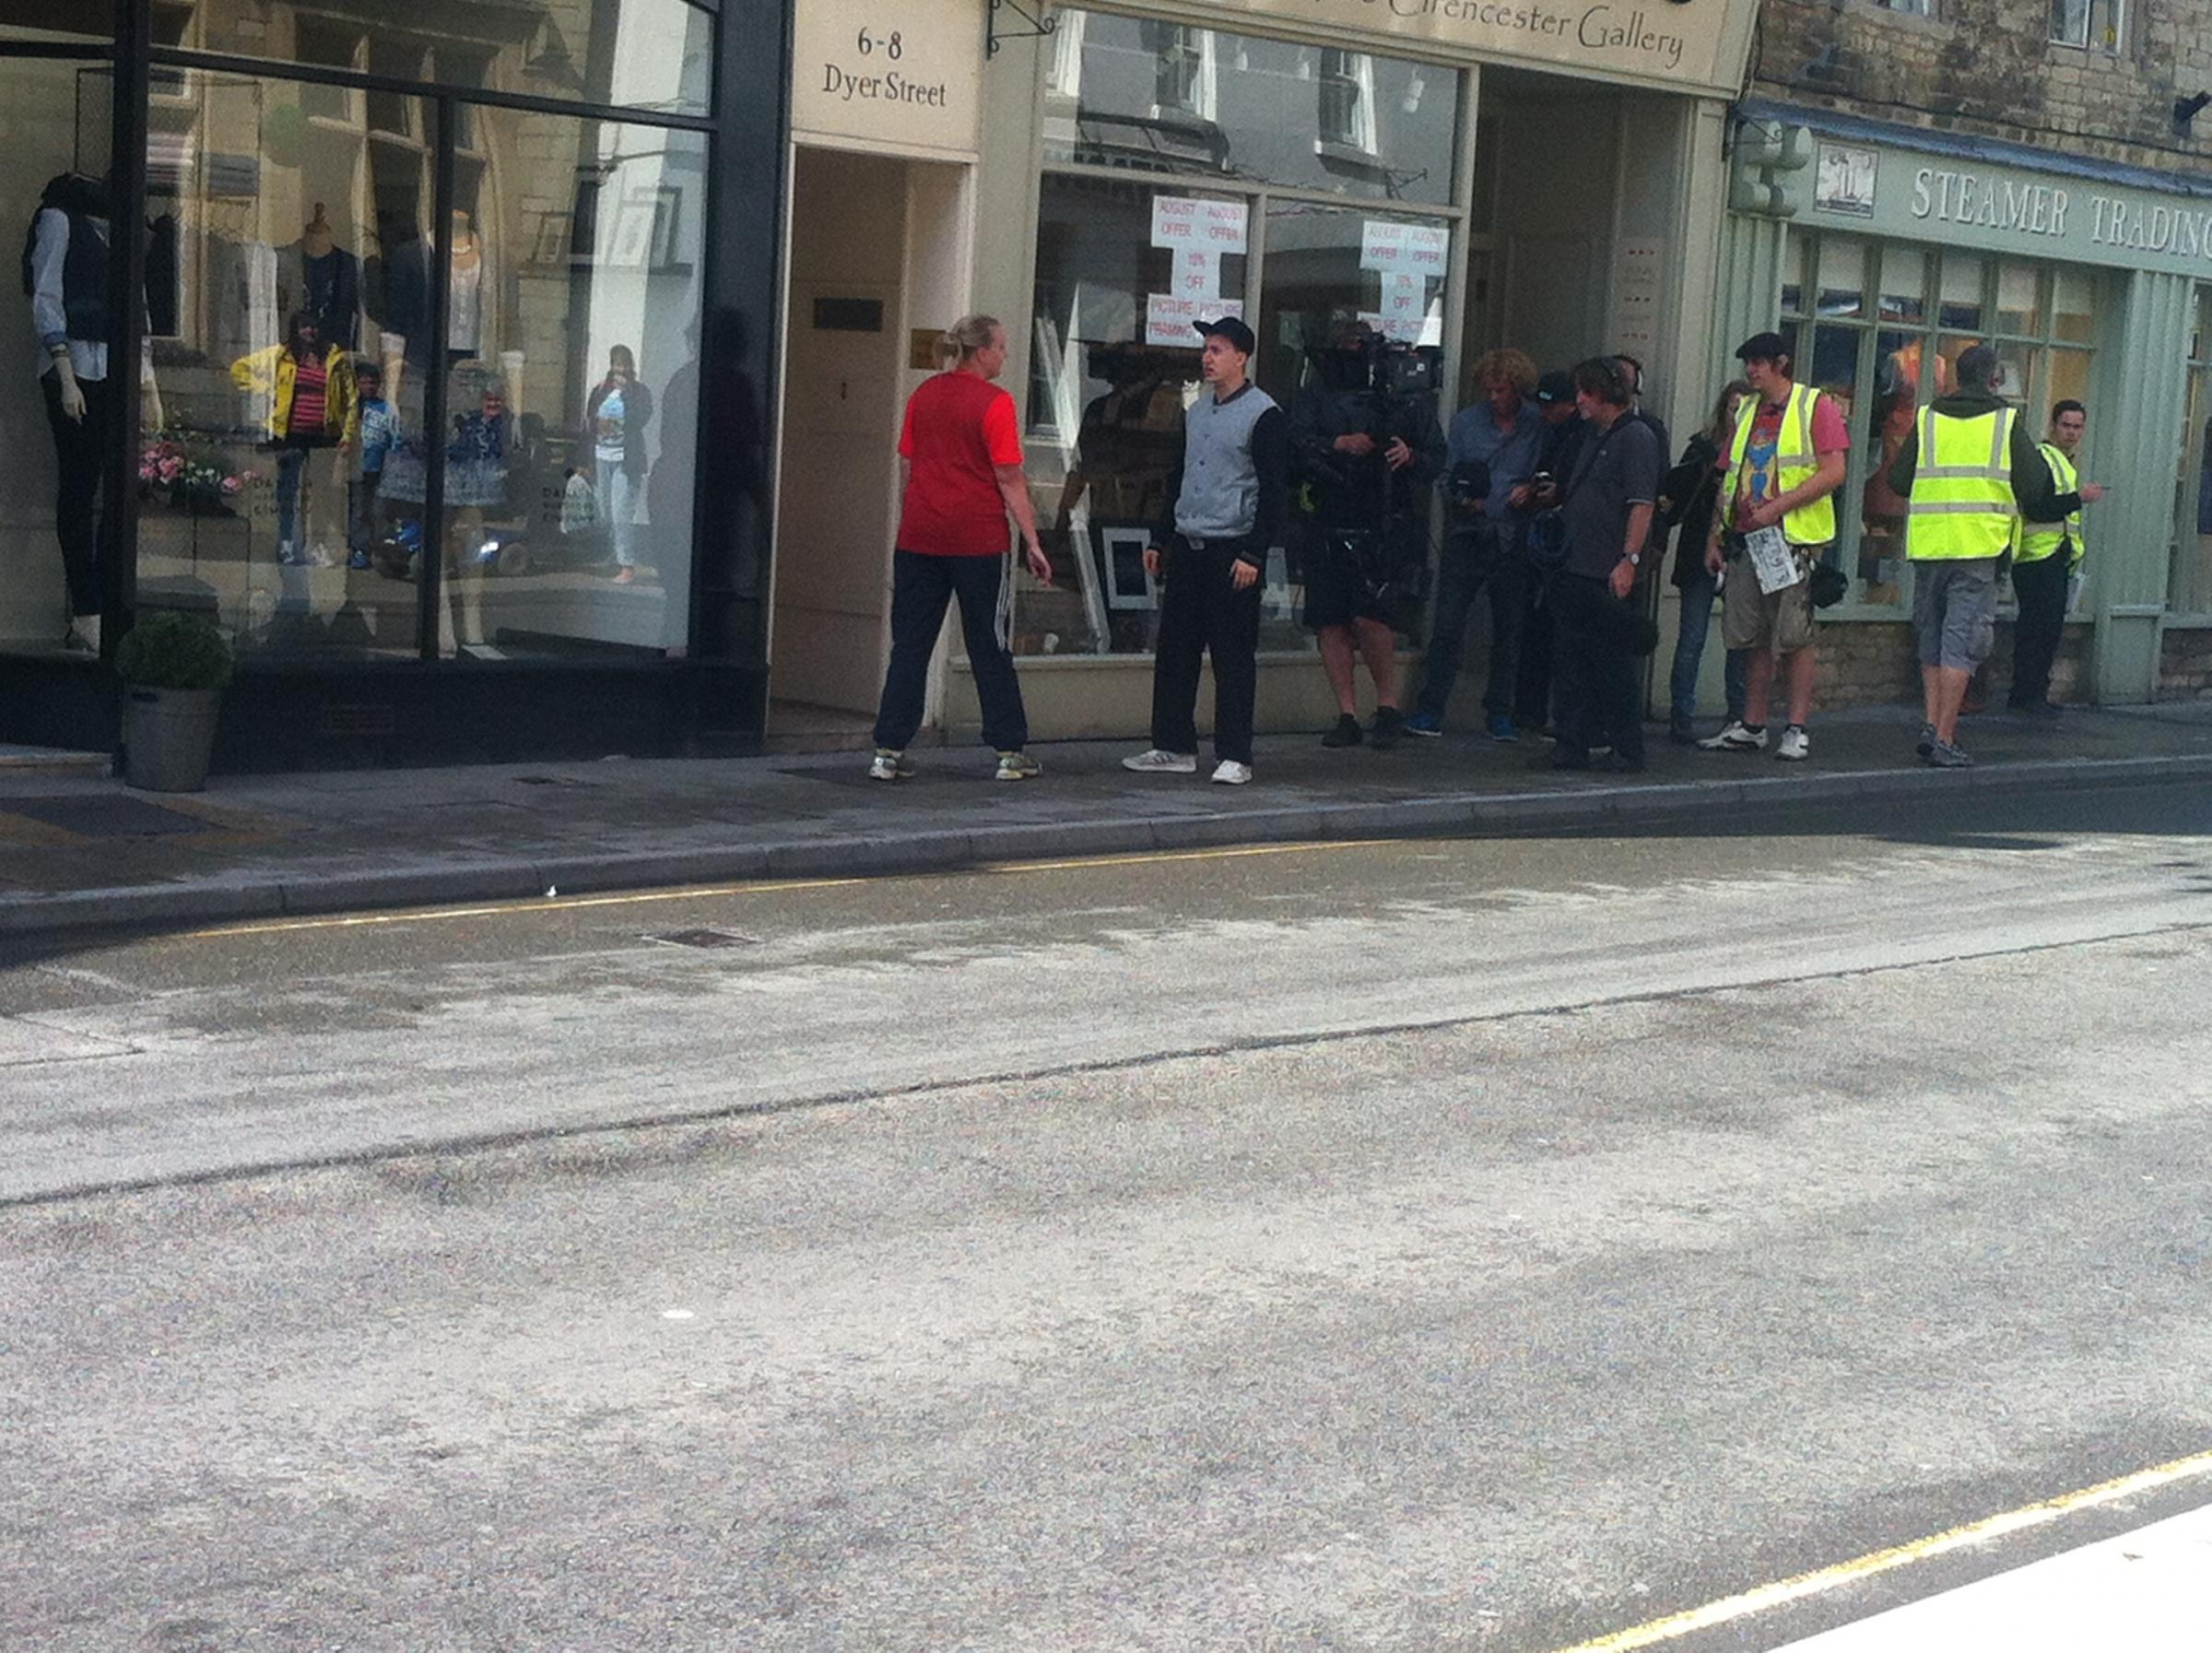 New sitcom being filmed in Cirencester